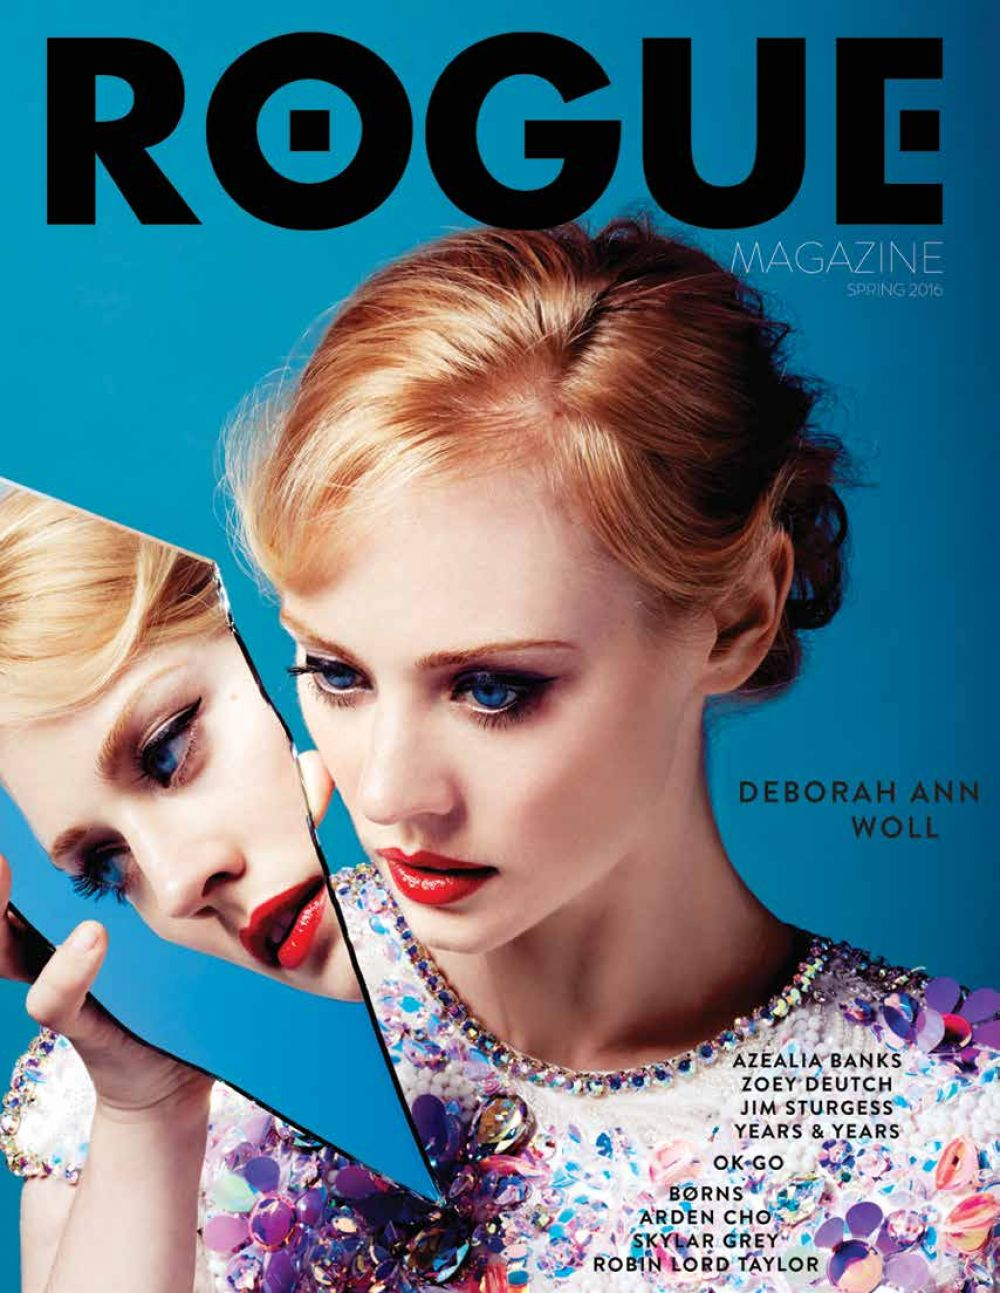 DEBORAH ANN WOLL in Rogue Magazine, Spring 2016 Issue